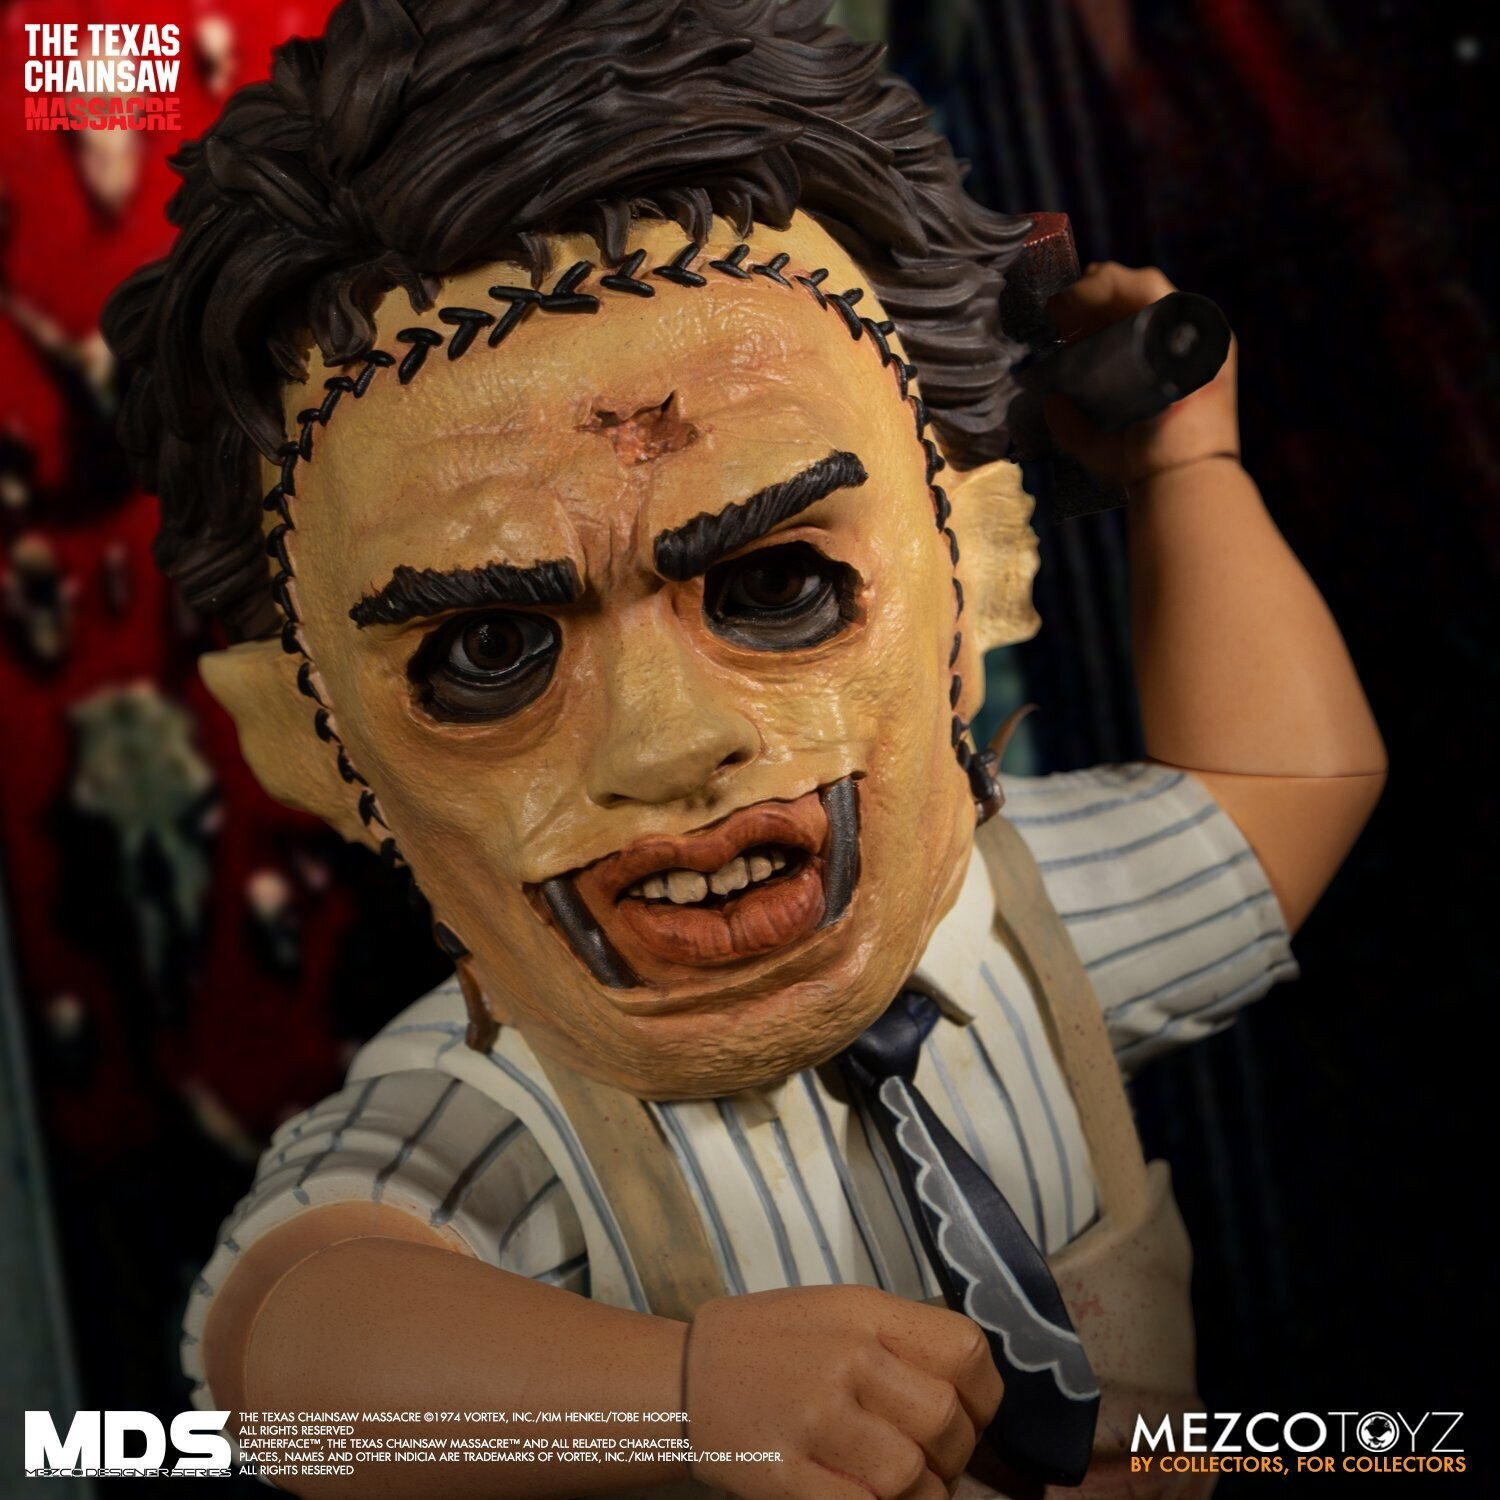 PRE-ORDER MEZCO MDS The Texas Chainsaw Massacre (1974): Leatherface